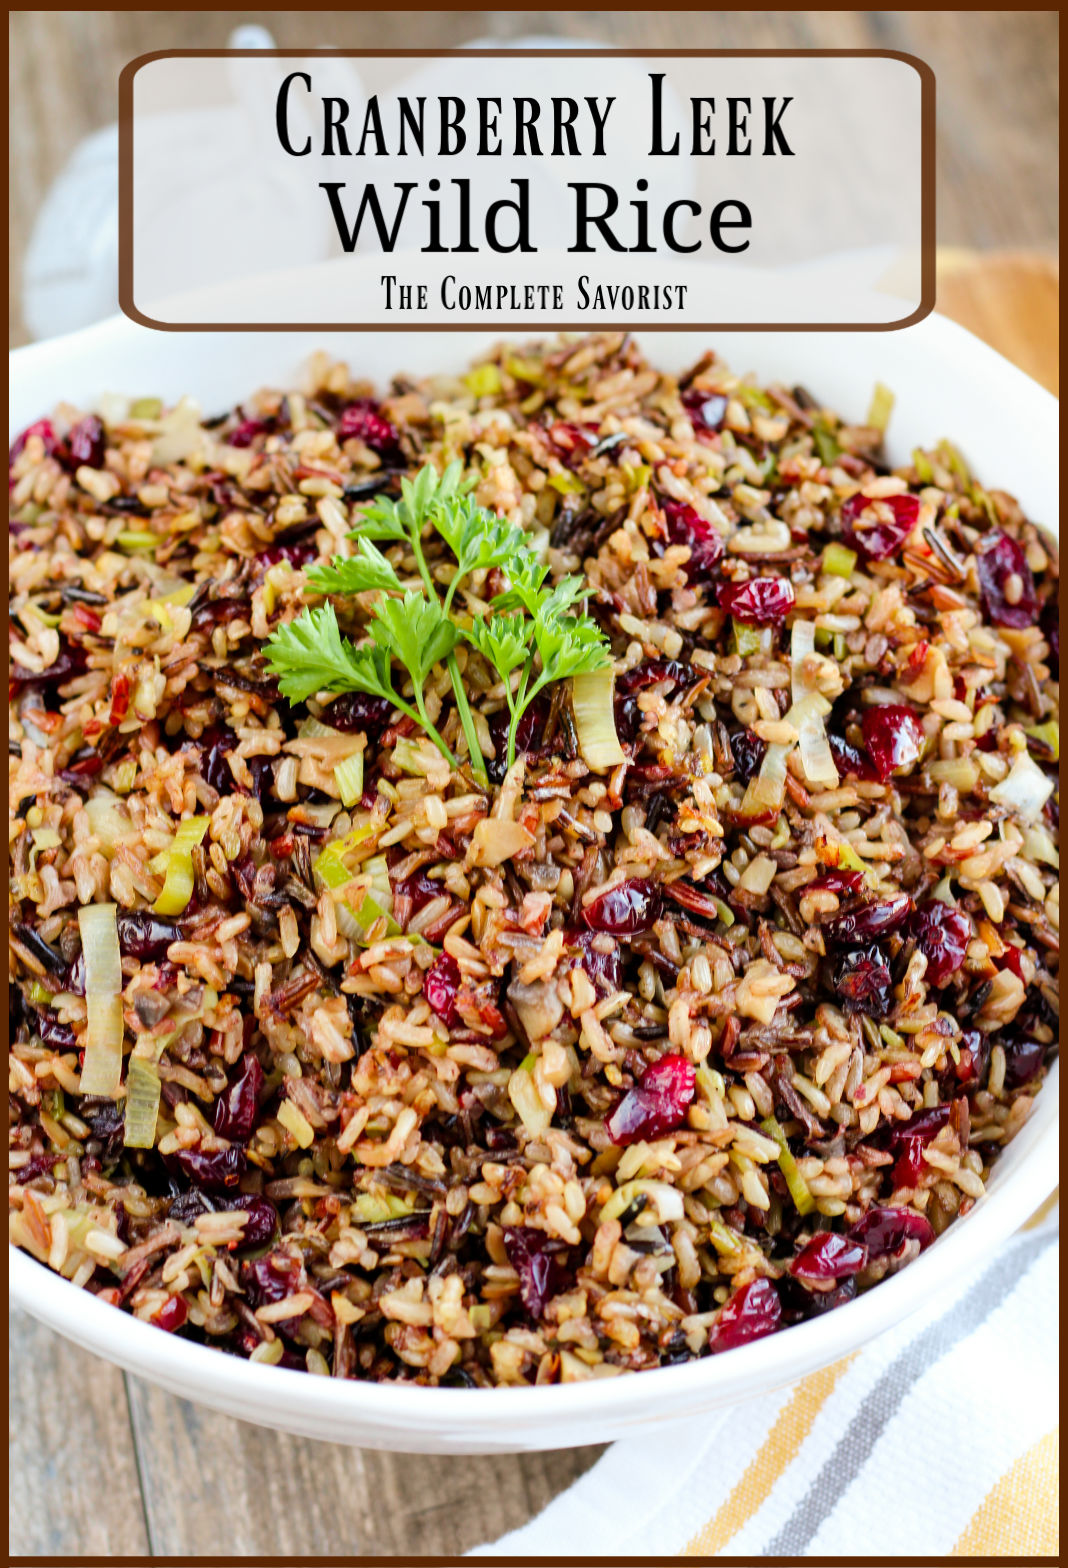 White serving bowl filled to the brim with cranberry leek wild rice with curly parsley as a garnish.